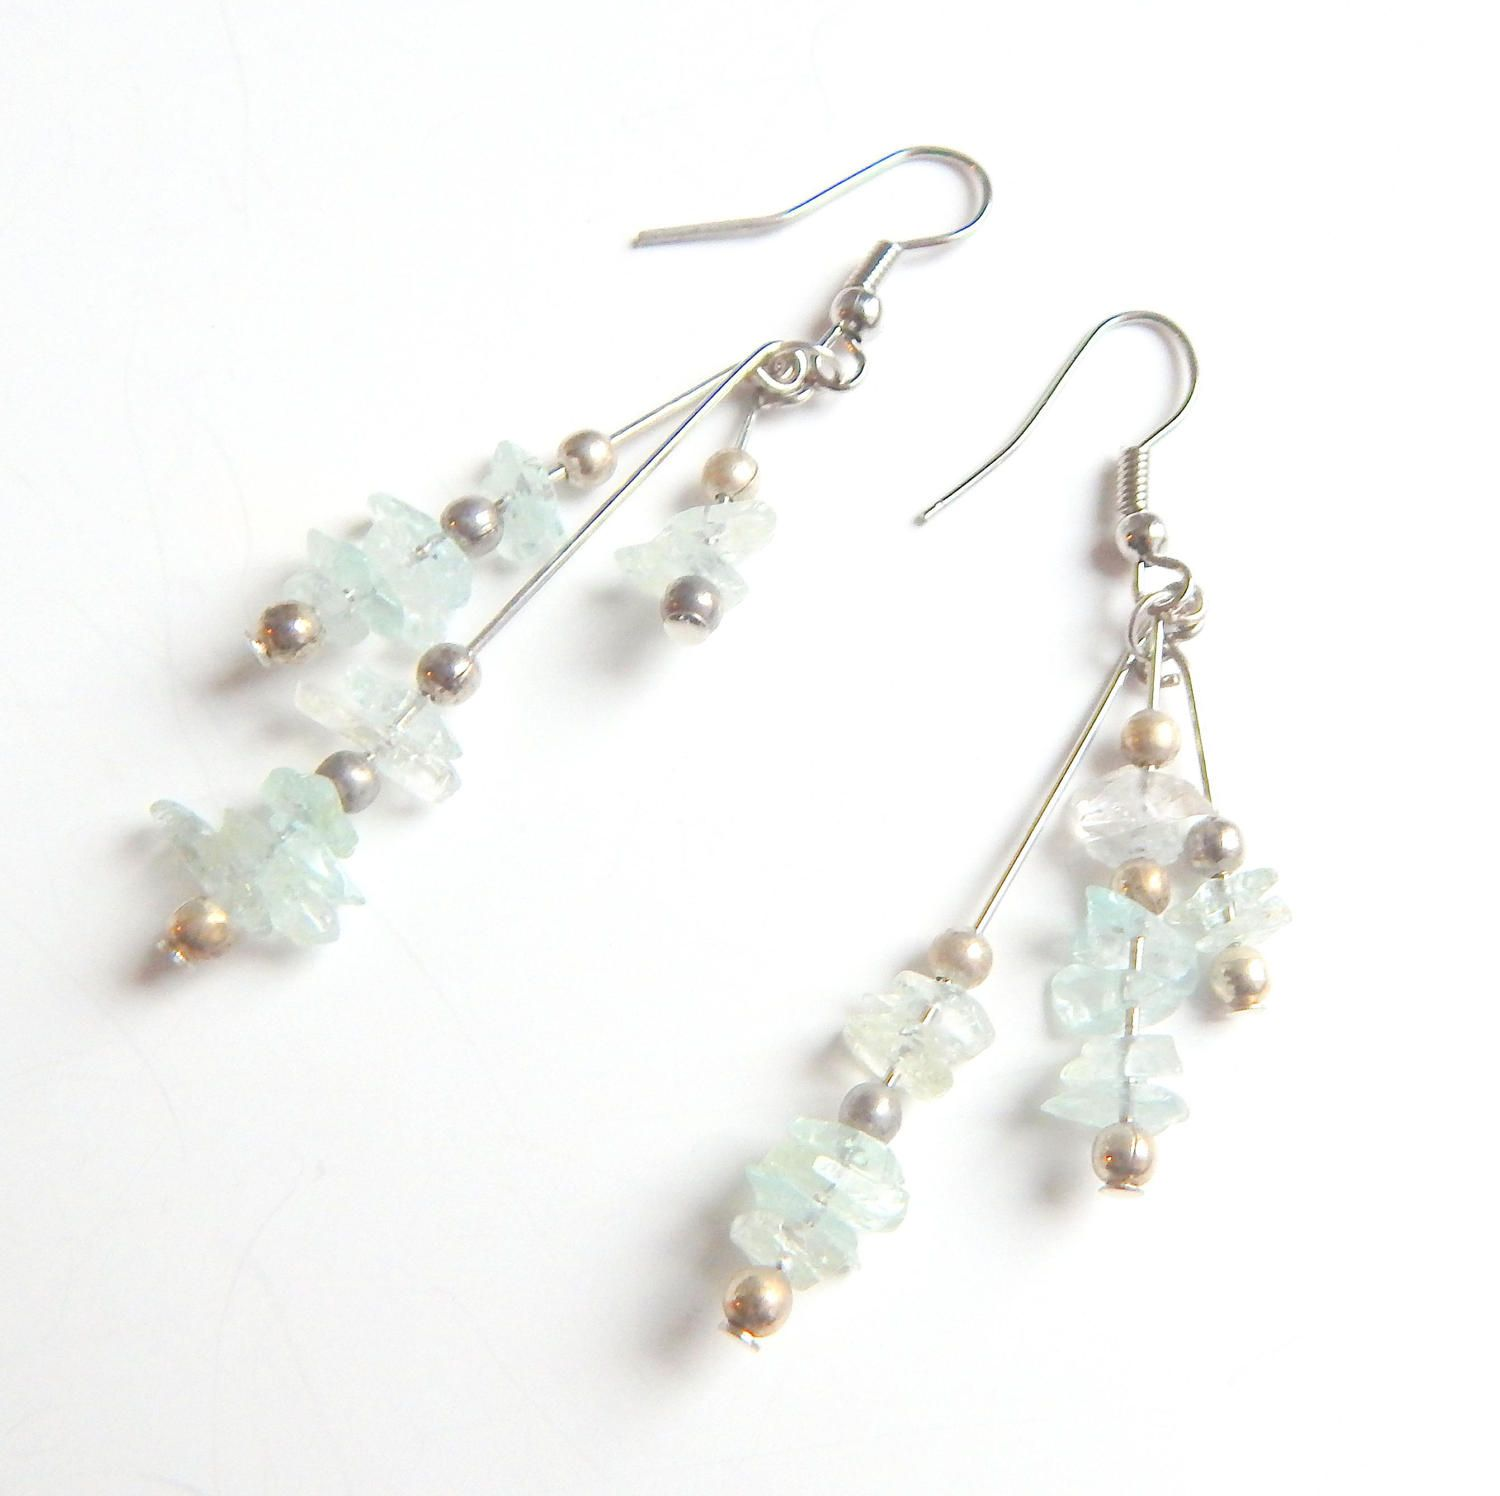 Vintage Aquamarine Chip Dangle Earrings, Aquamarine Drop Earrings, Pisces Birthstone, Gift for Her, Summer Jewelry by ArtfulAlleyStudio on Etsy